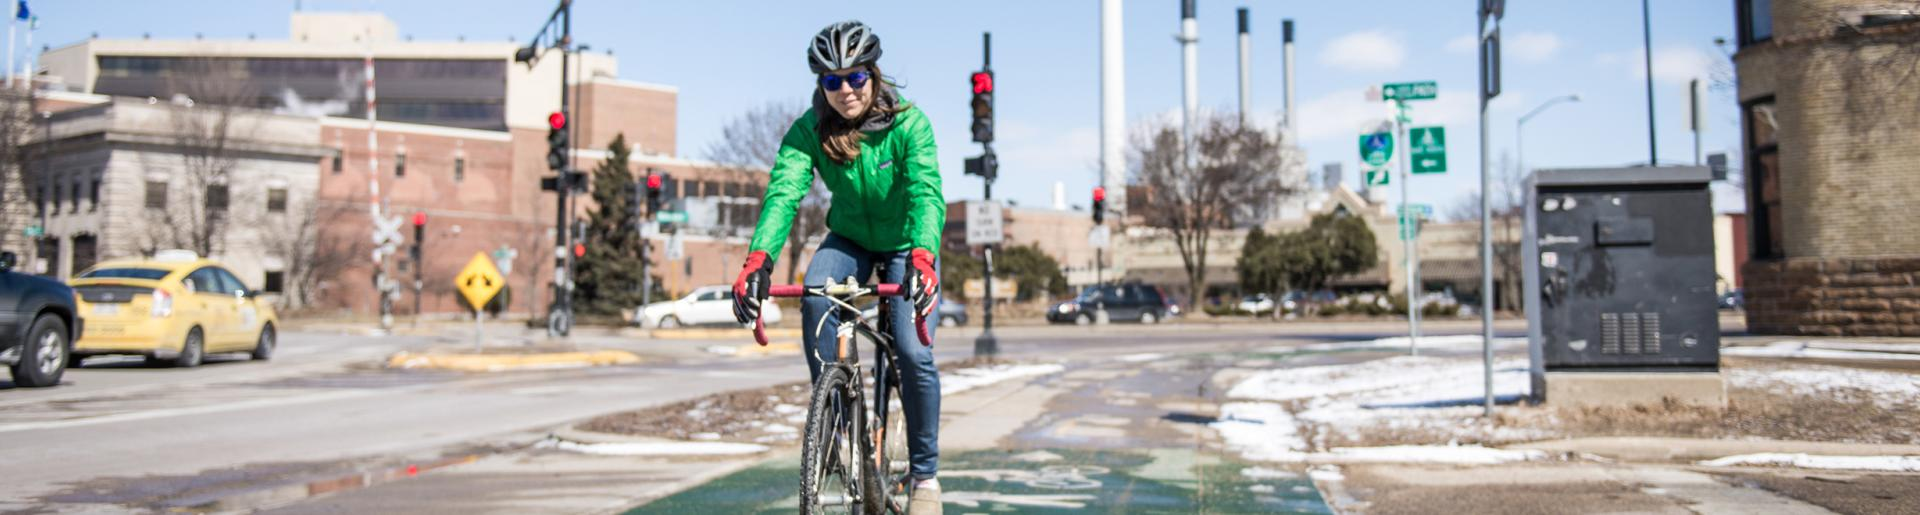 Biking Downtown in Winter